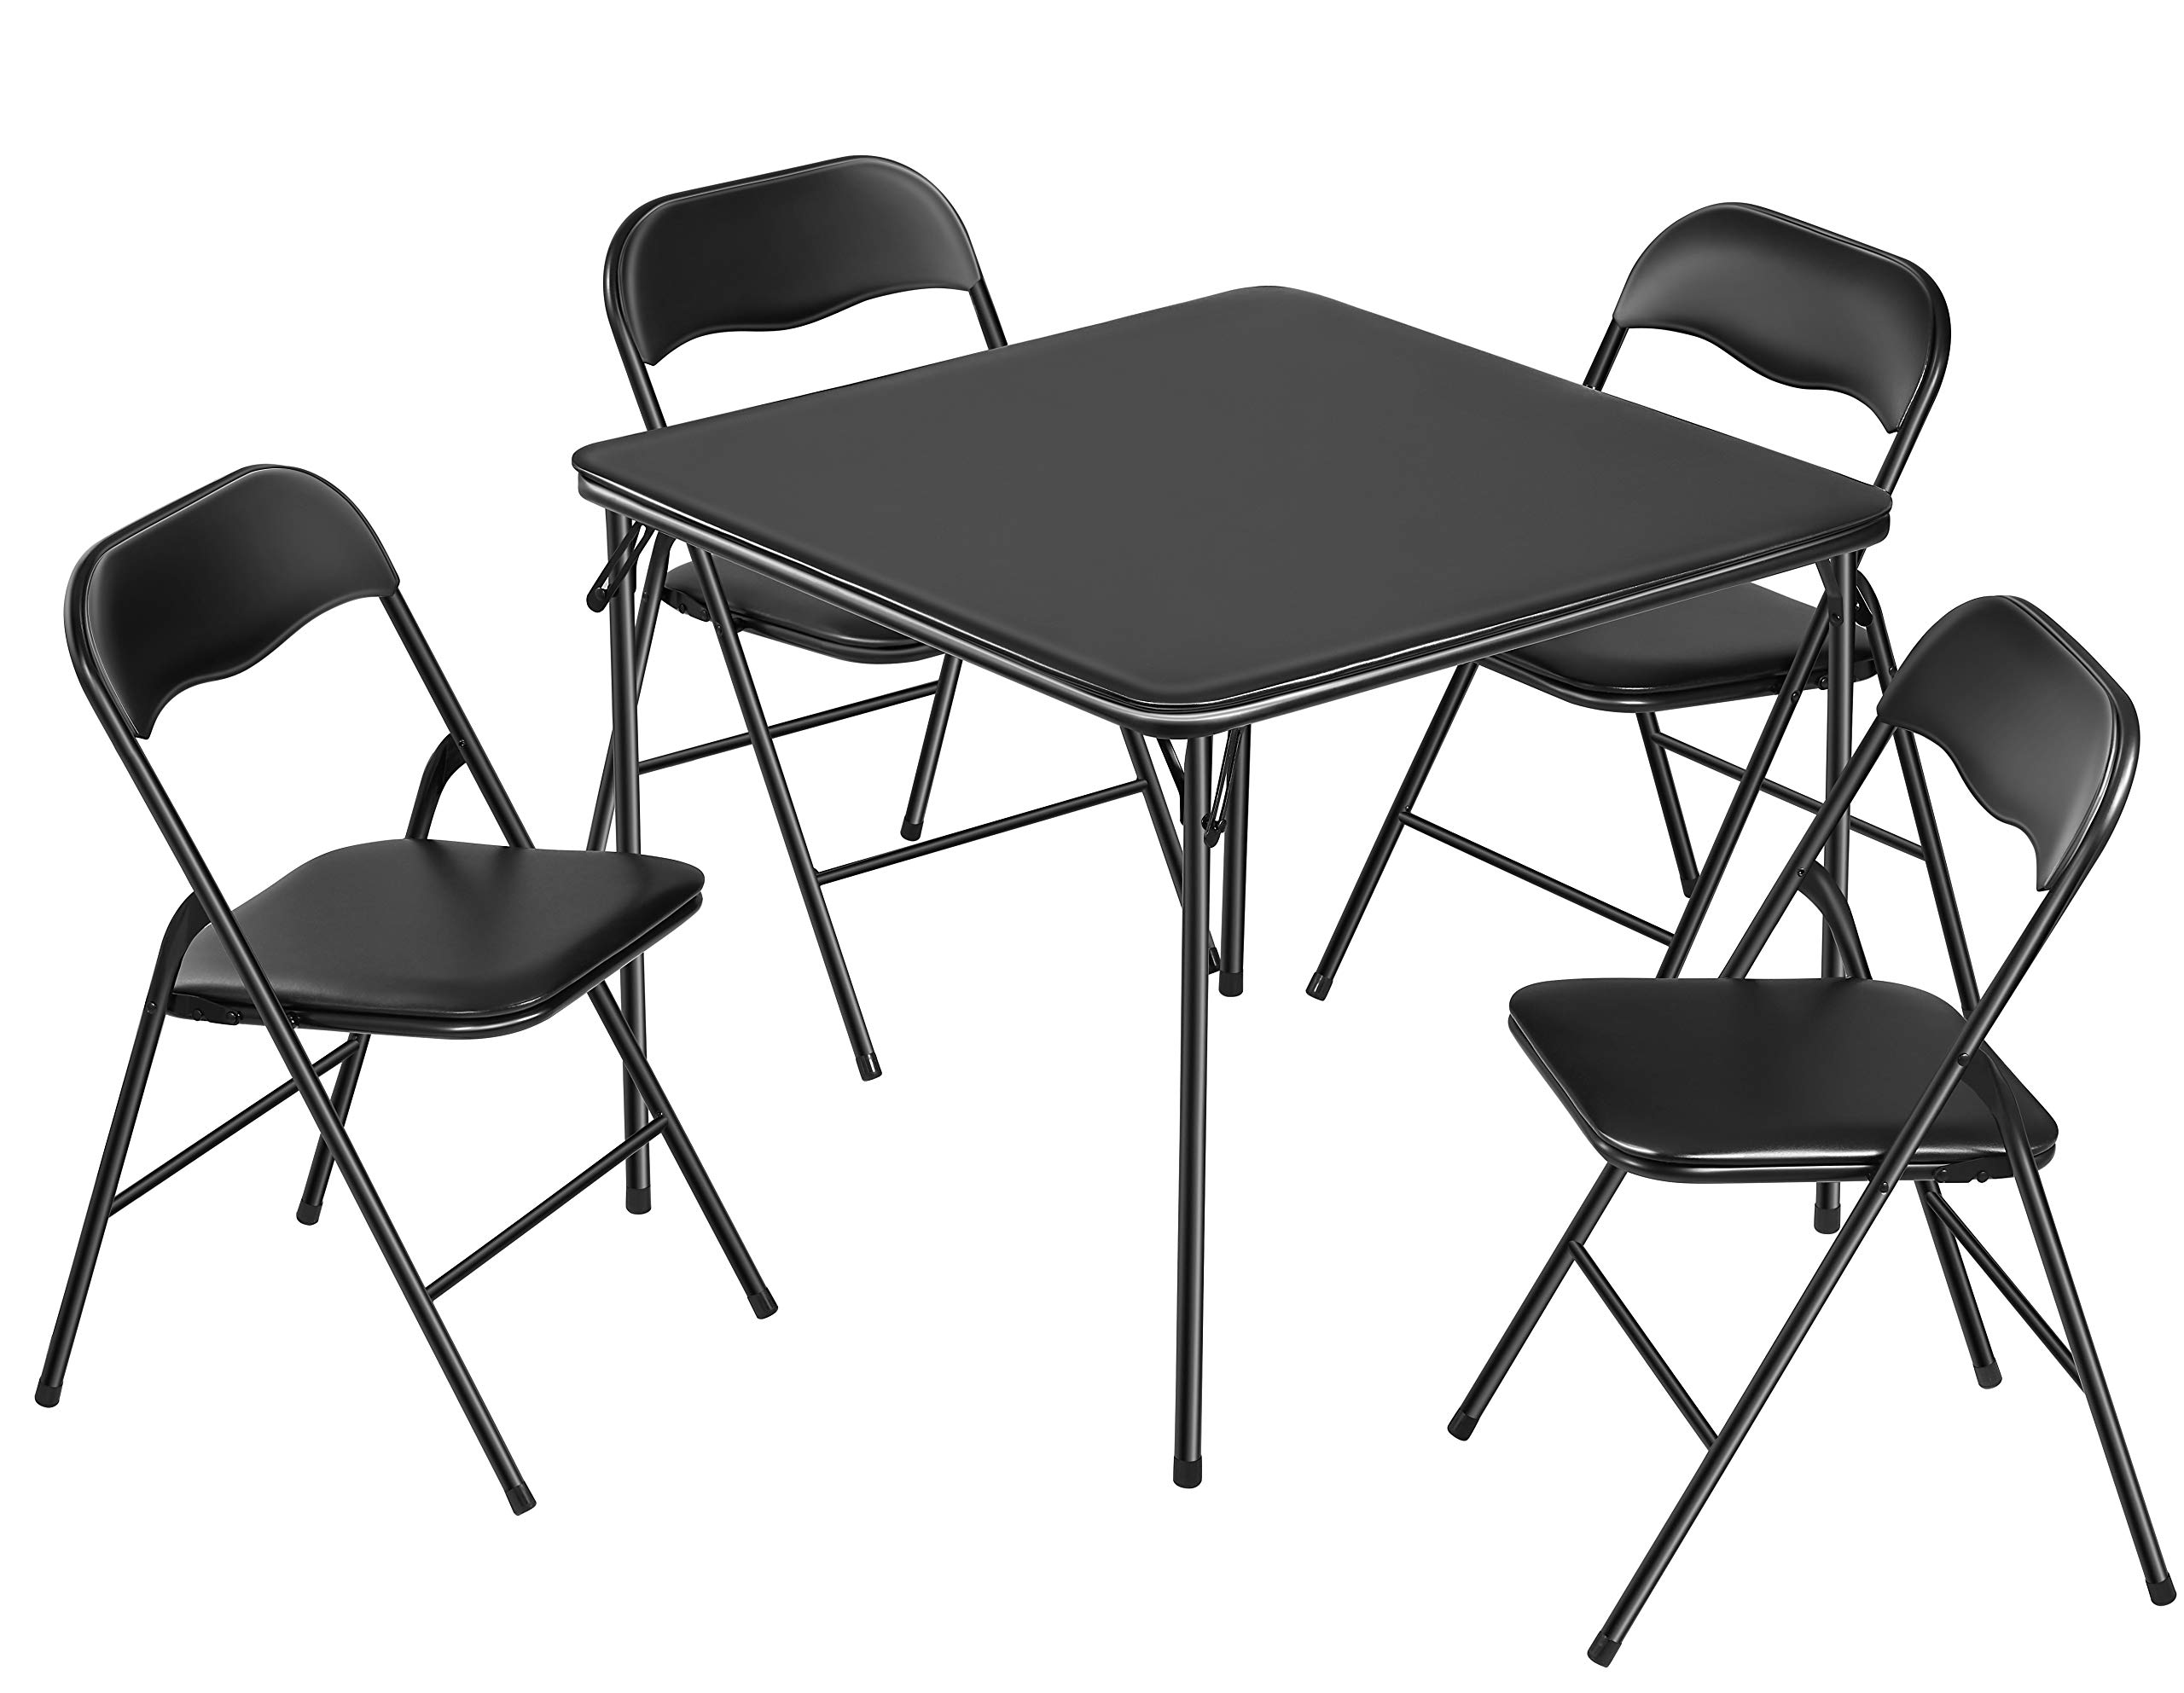 Kealive Folding Table and Chairs 5 Piece Padded Seat, Square Card Table and Chairs Set with Locking Legs, Multipurpose Dining Game Table for Puzzles Portable and Easy for Compact Storage, Black by kealive